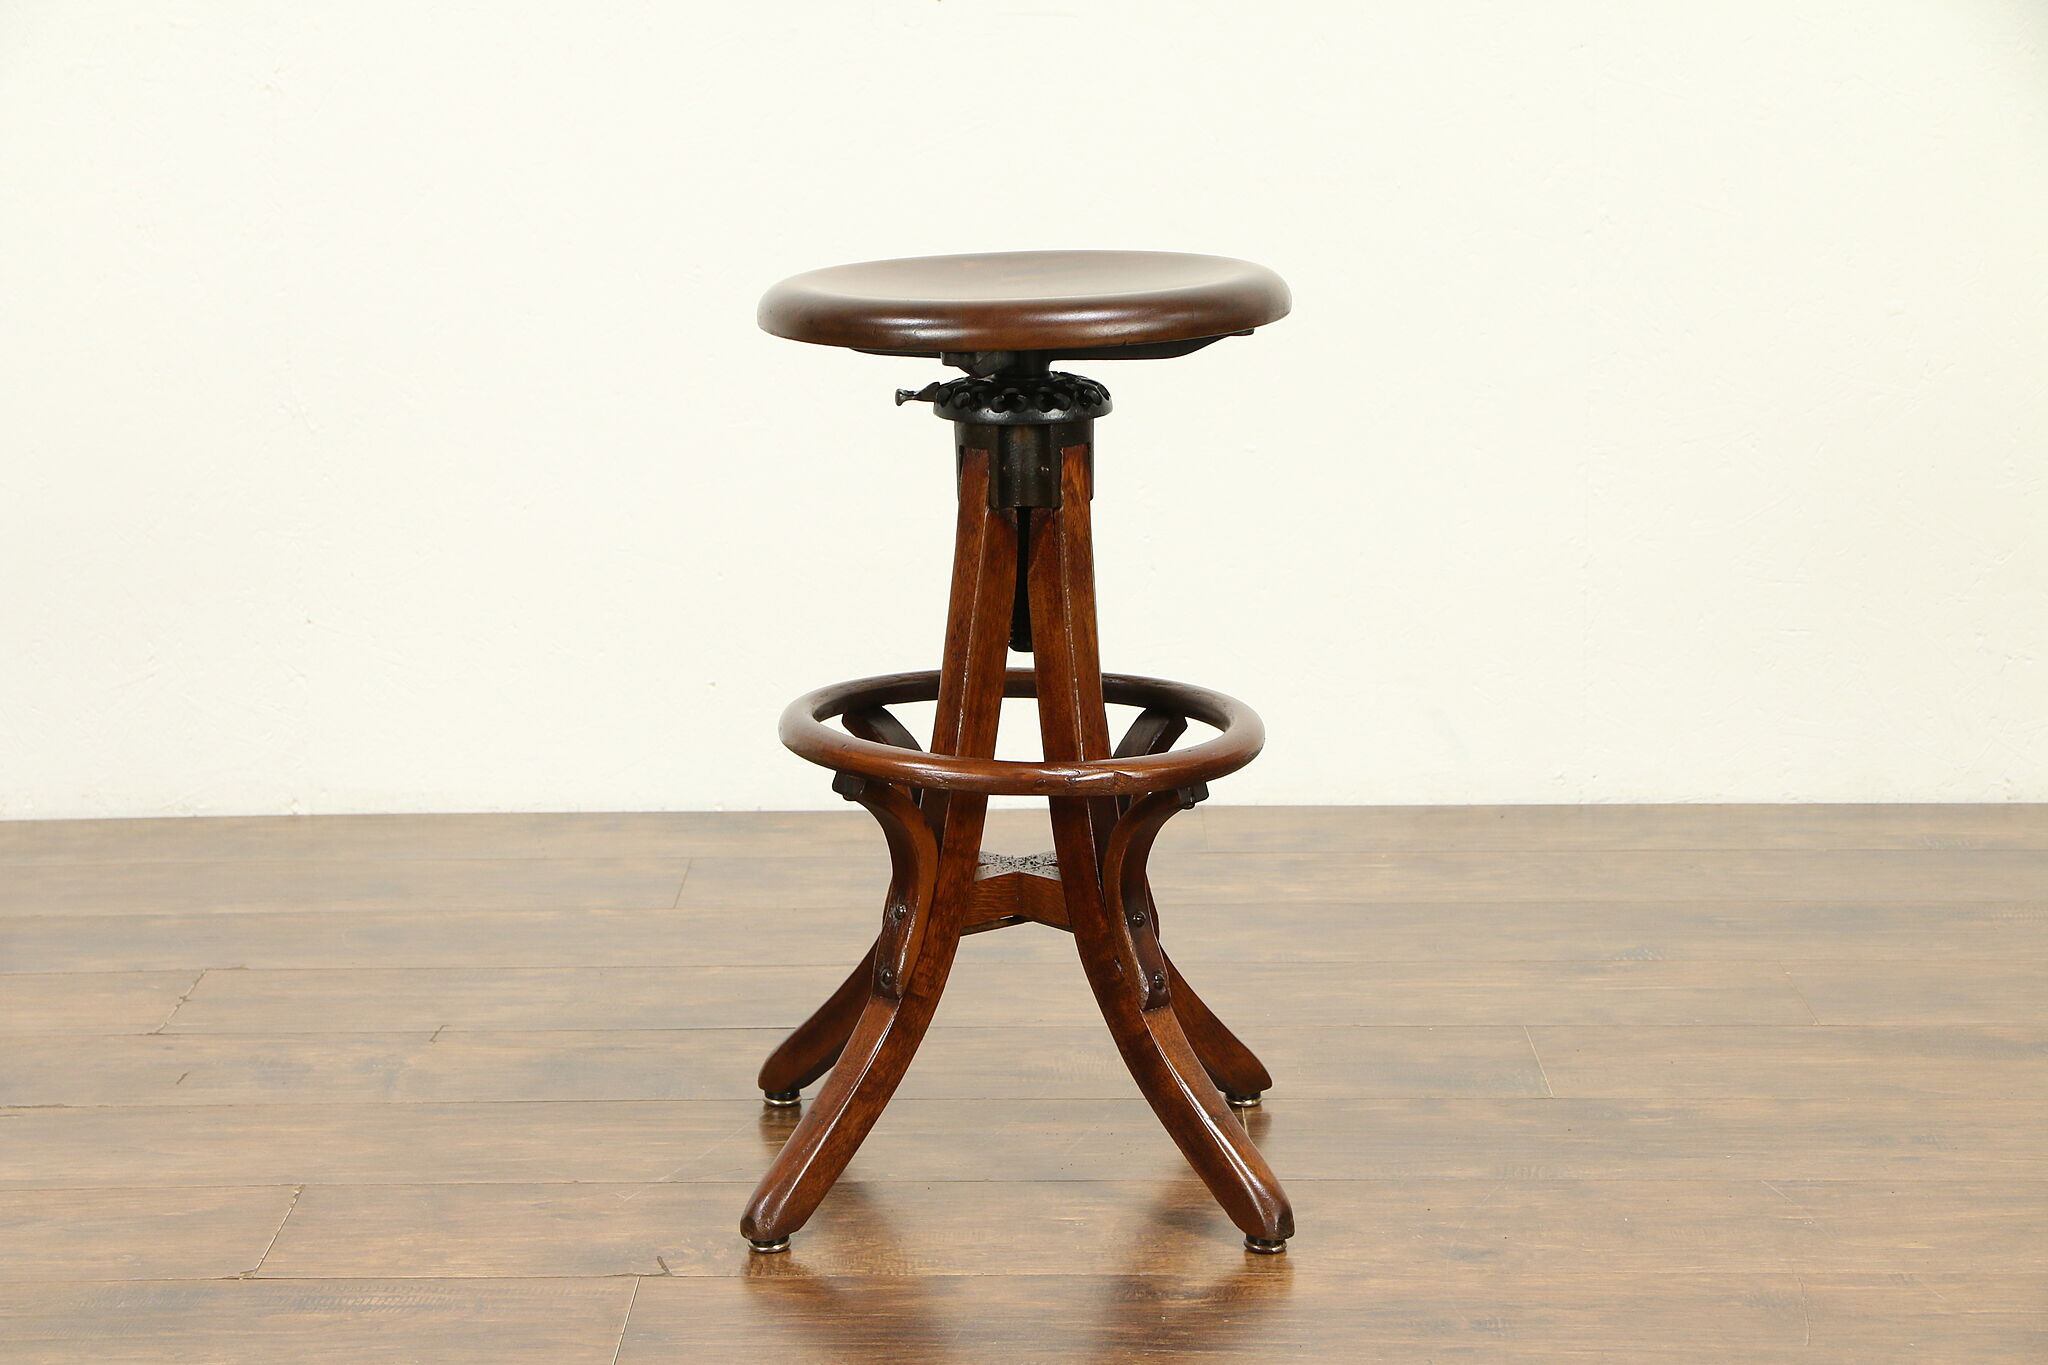 Outstanding Architect Drafting Artist Swivel Stool Adjustable Milwaukee Pat 1914 31851 Caraccident5 Cool Chair Designs And Ideas Caraccident5Info